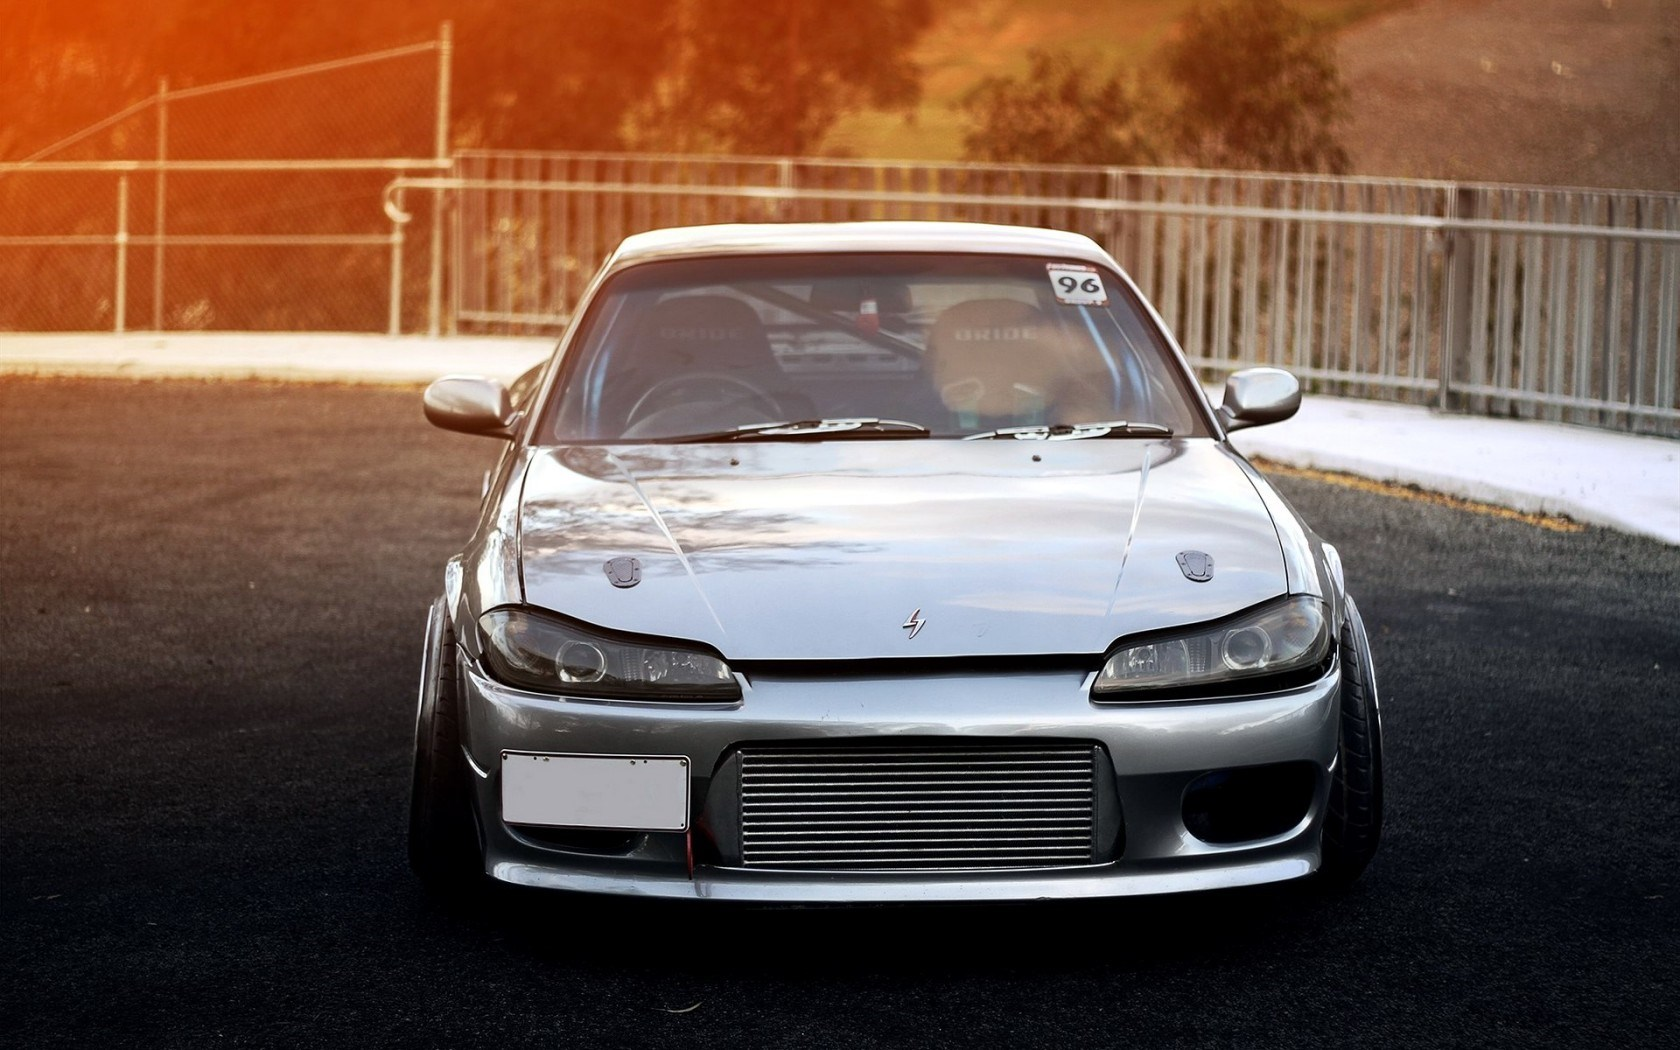 s15 wallpaper - photo #14